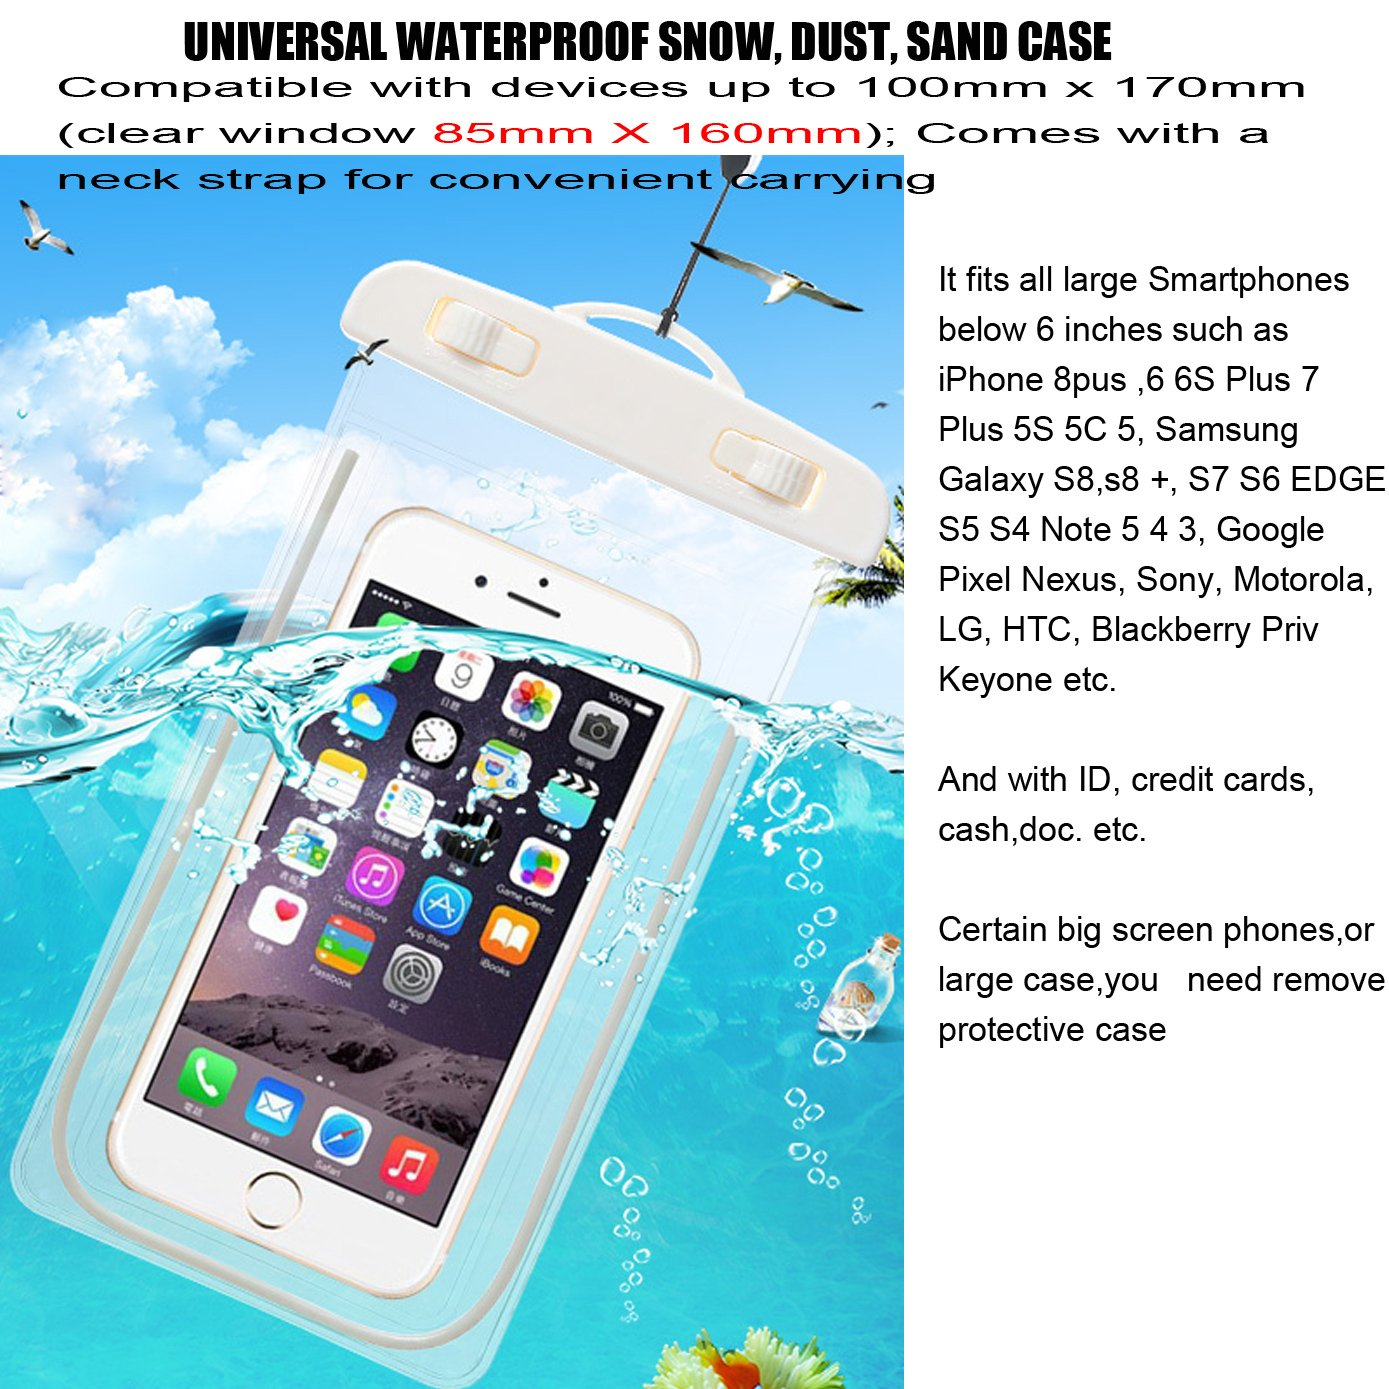 [2Pack Blue+2Pack pink] Universal Waterproof Phone Case Dry Bag CaseHQ for iPhone 7,7 plus,8,8 plus,6/6s/6plus/6splus Samsung Galaxy s5/s6,s7,s8 plus etc. Waterproof for Cell Phone up to 5.8 inches by CaseHQ (Image #7)